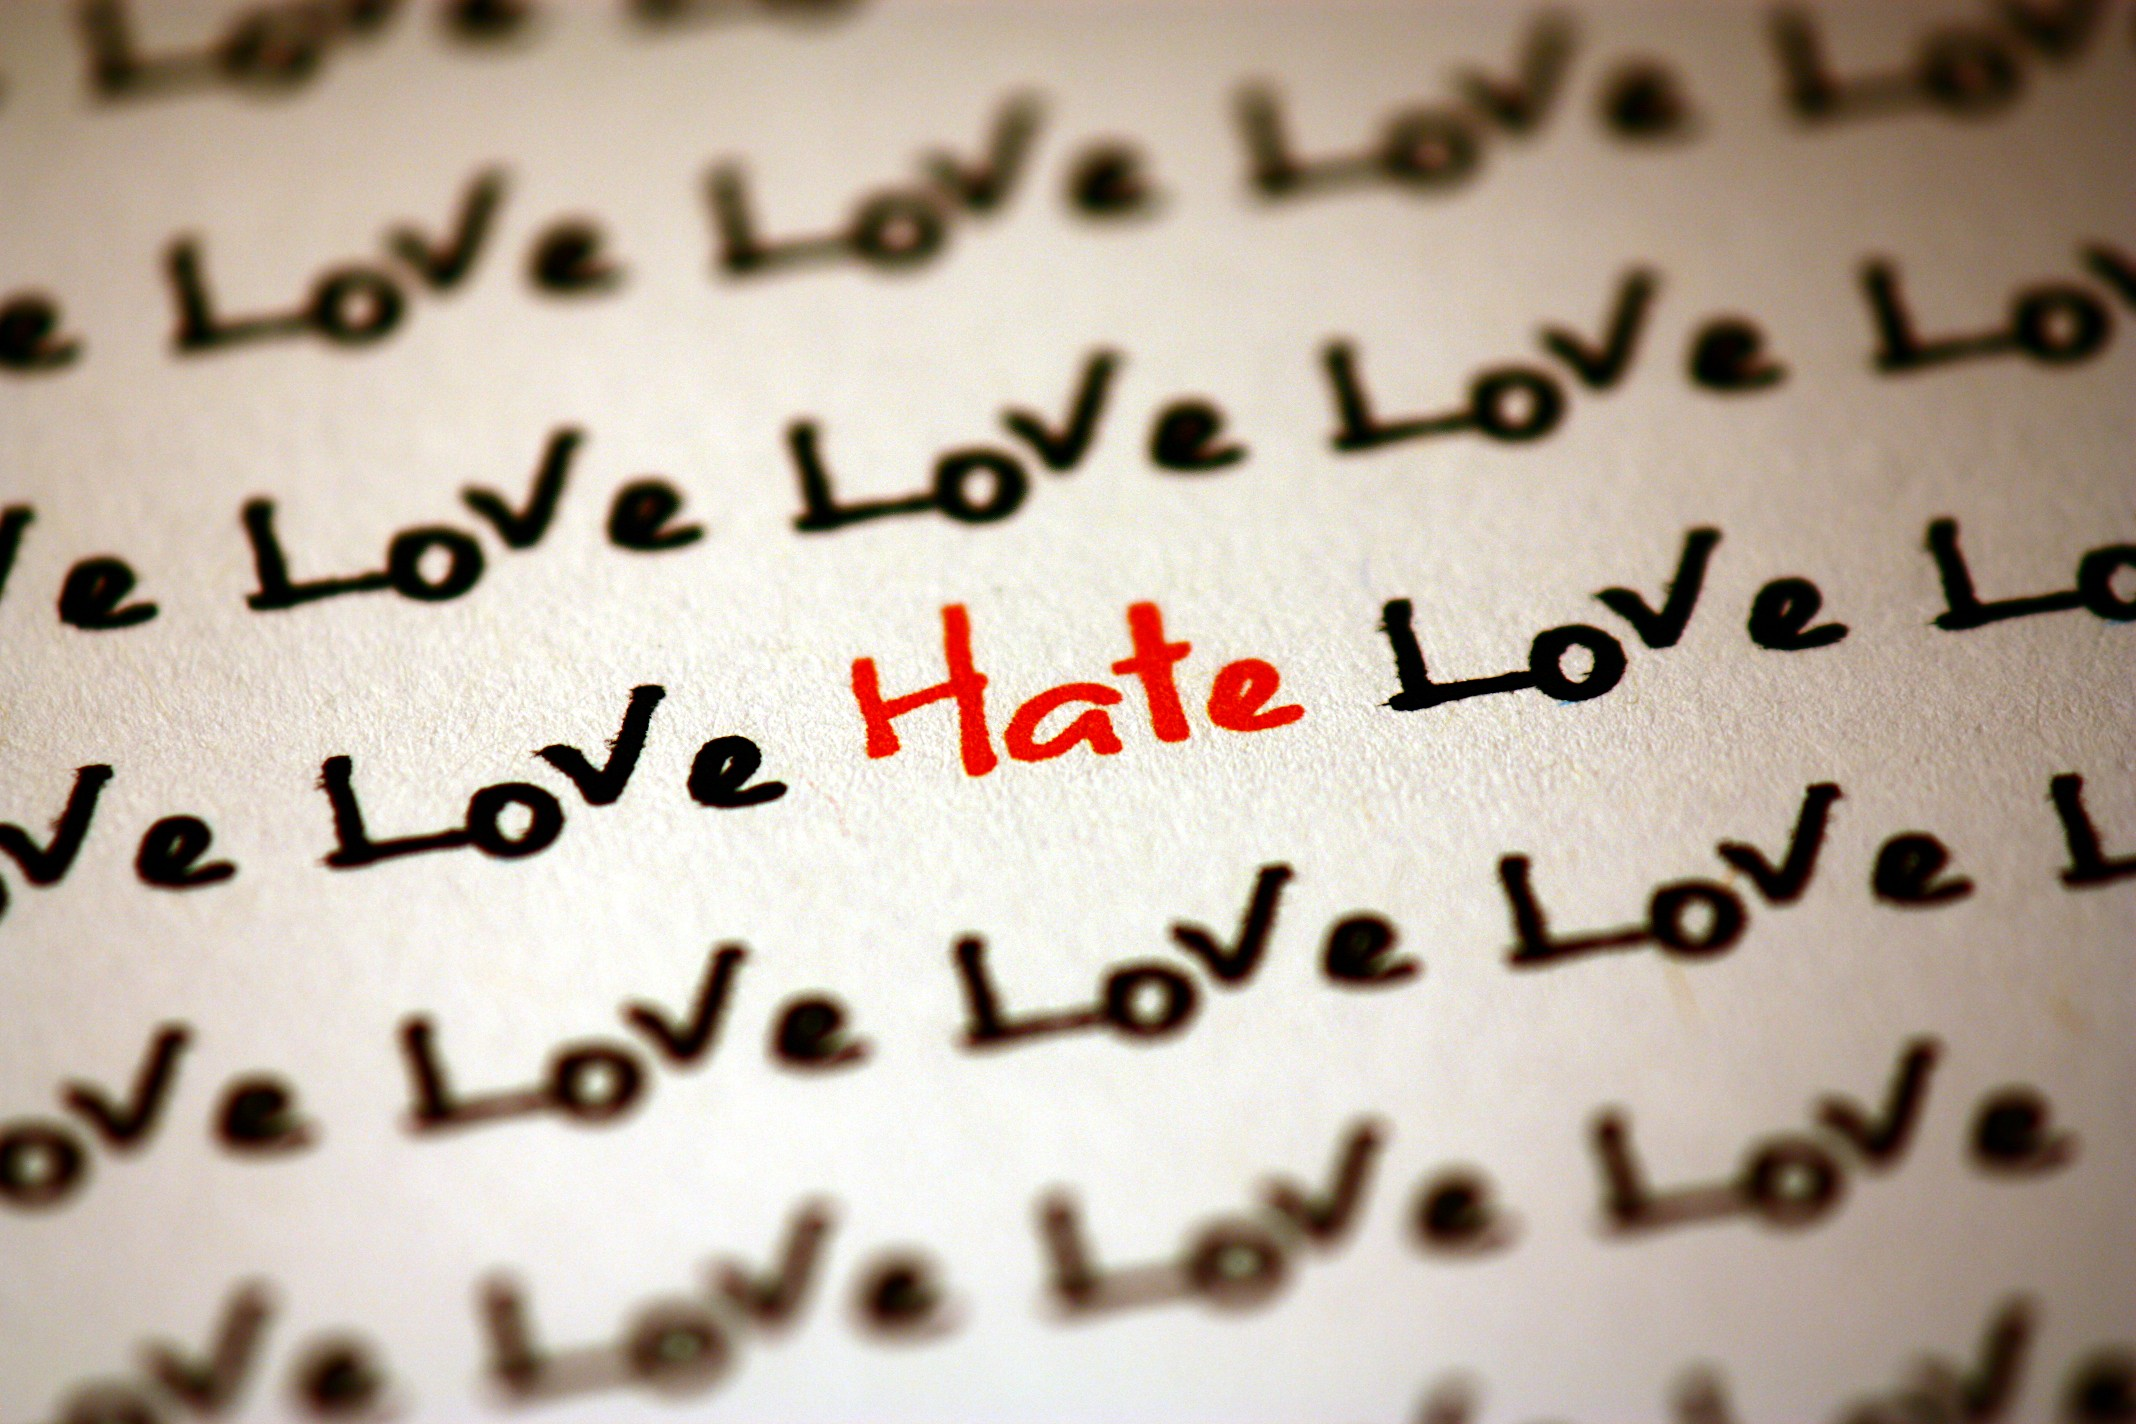 I Hate Love Wallpaper For Fb : i hate love wallpaper - HD Desktop Wallpapers 4k HD